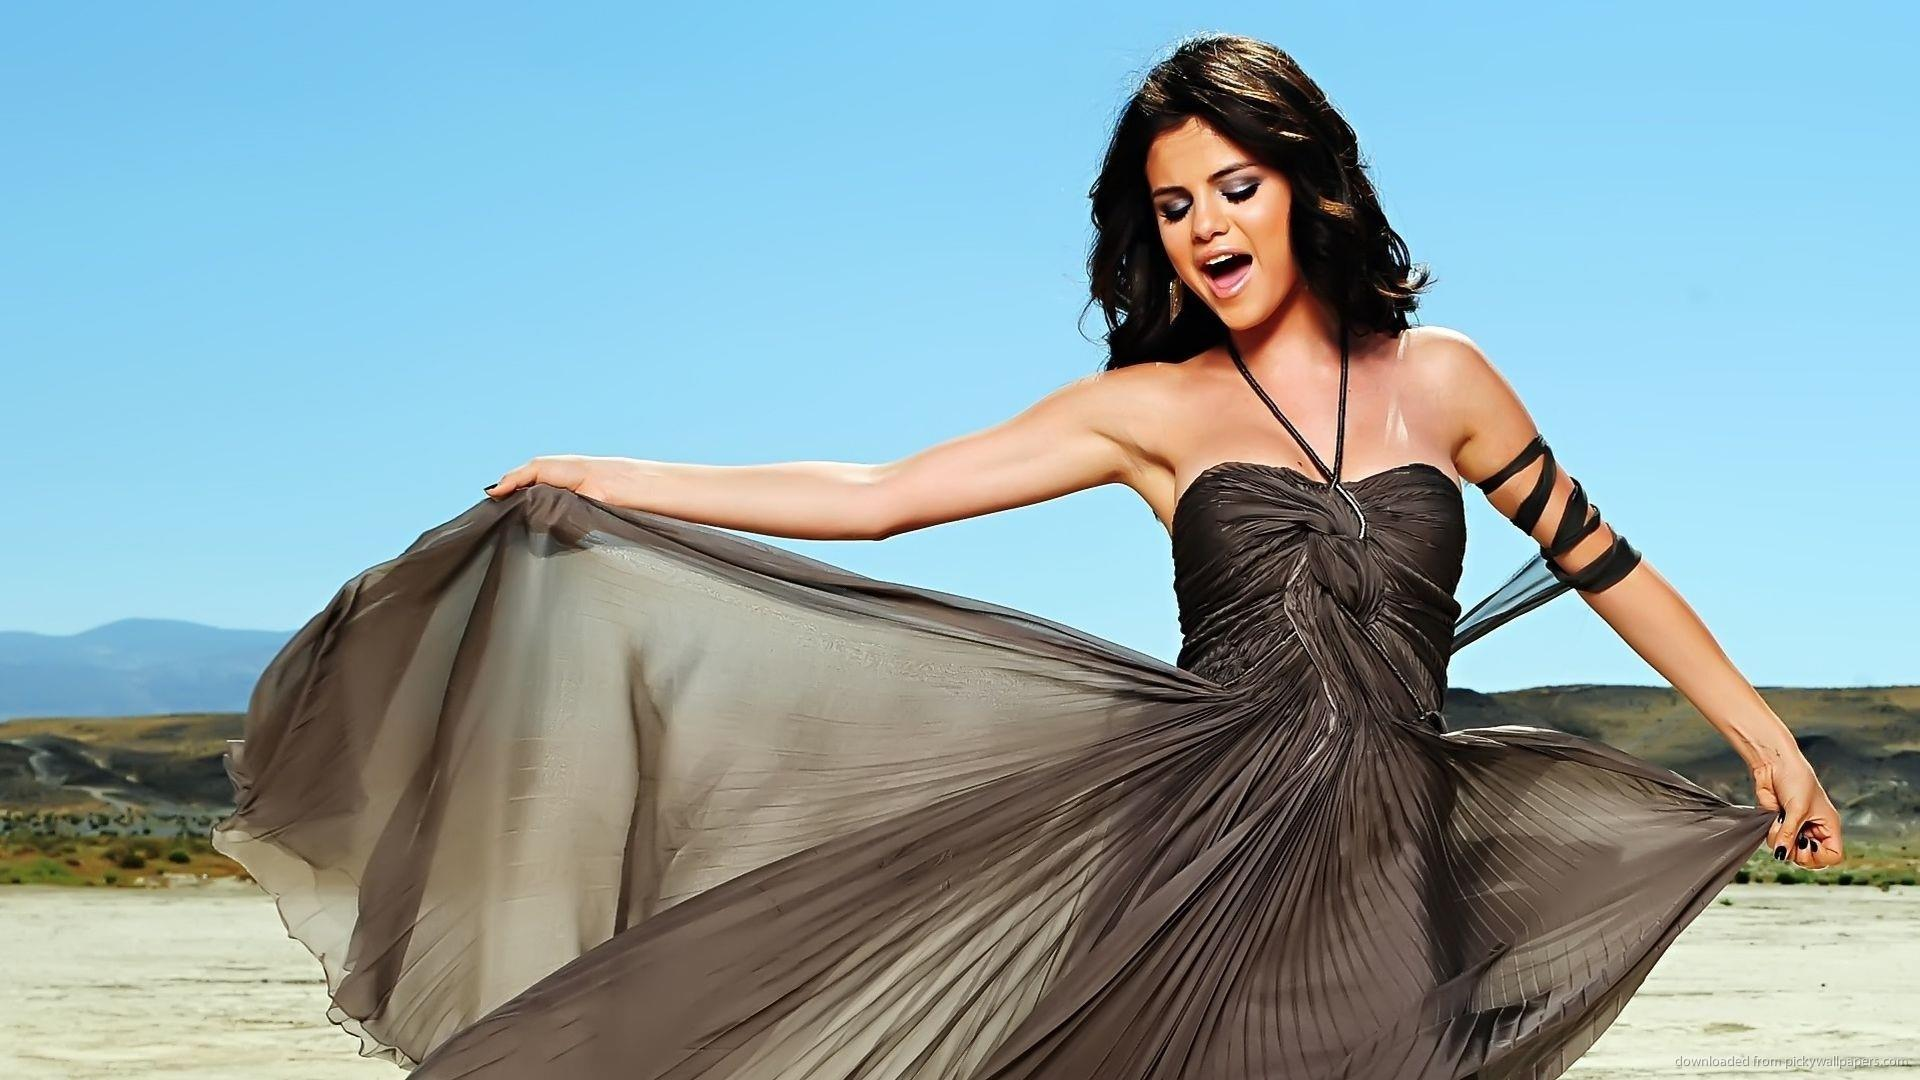 Selena Gomez Singing In The Desert Picture